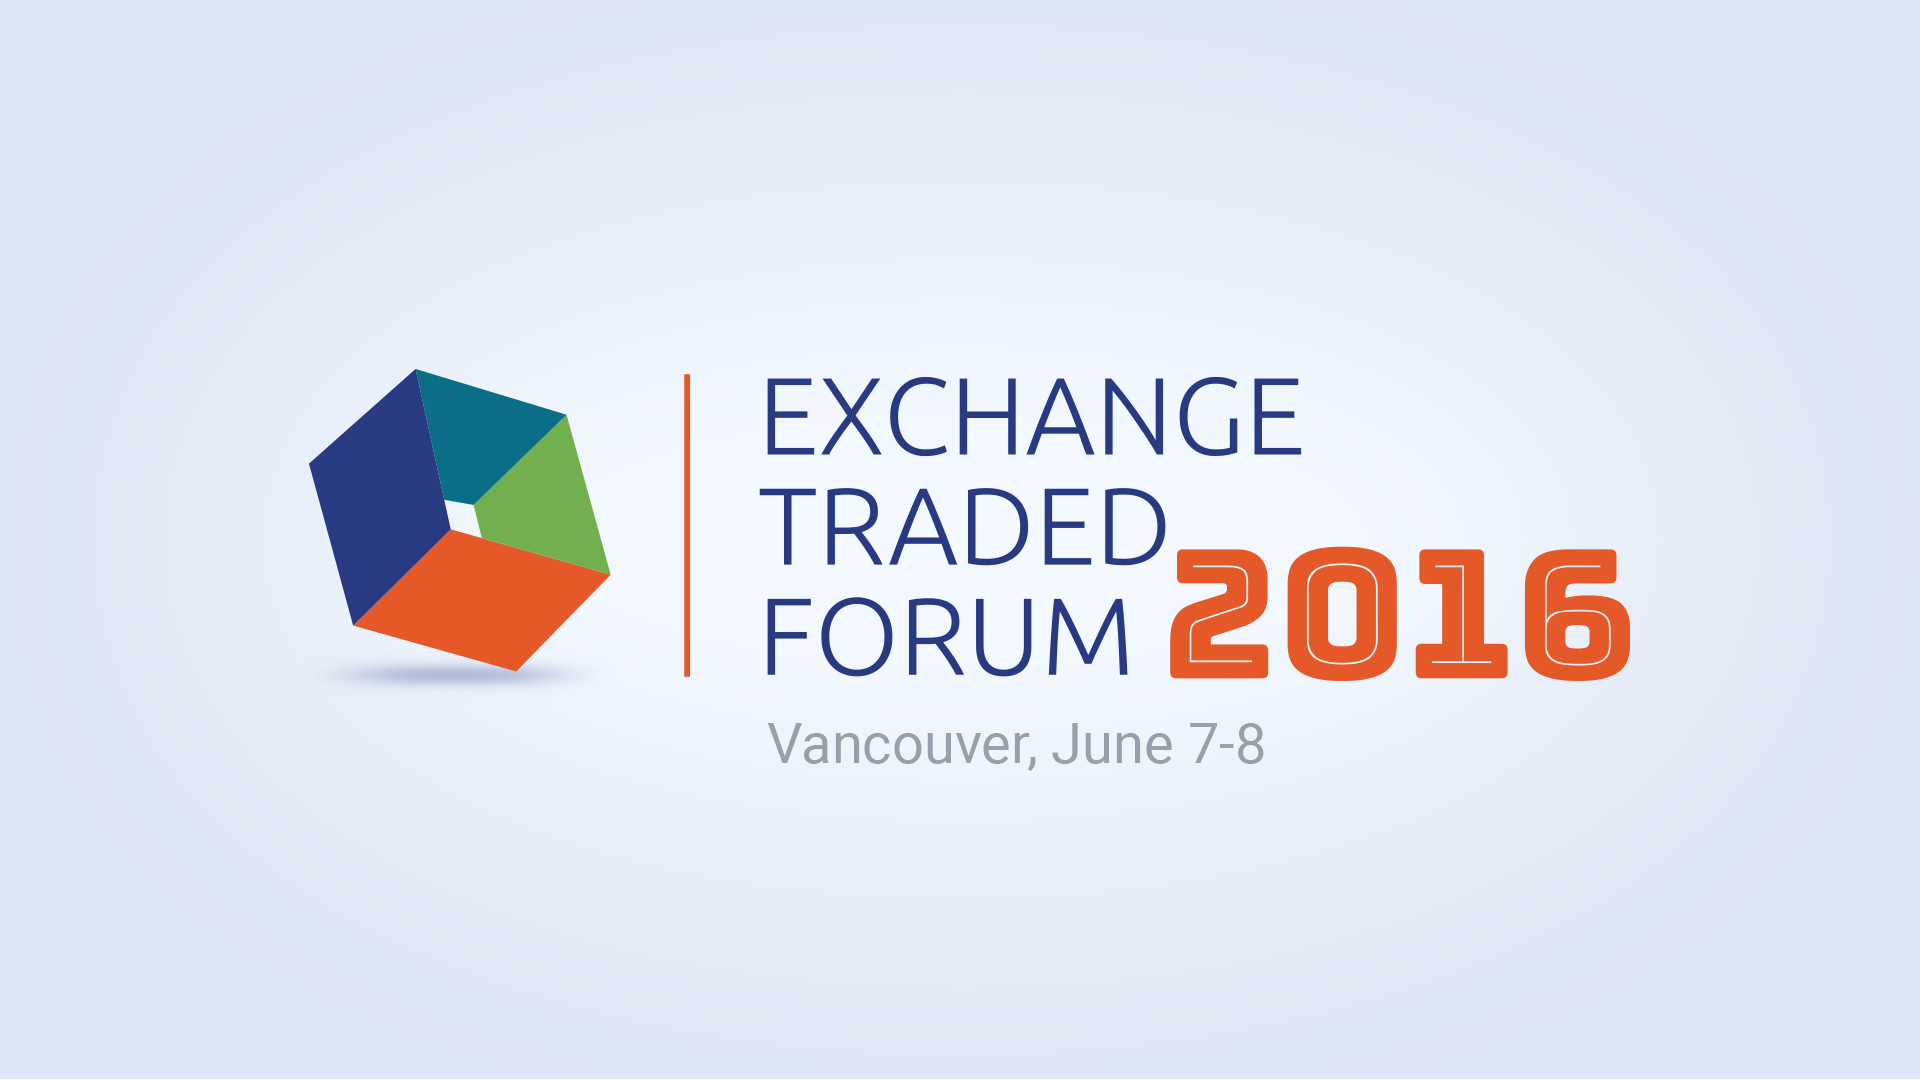 exchange-traded-forum-2016-feature-image